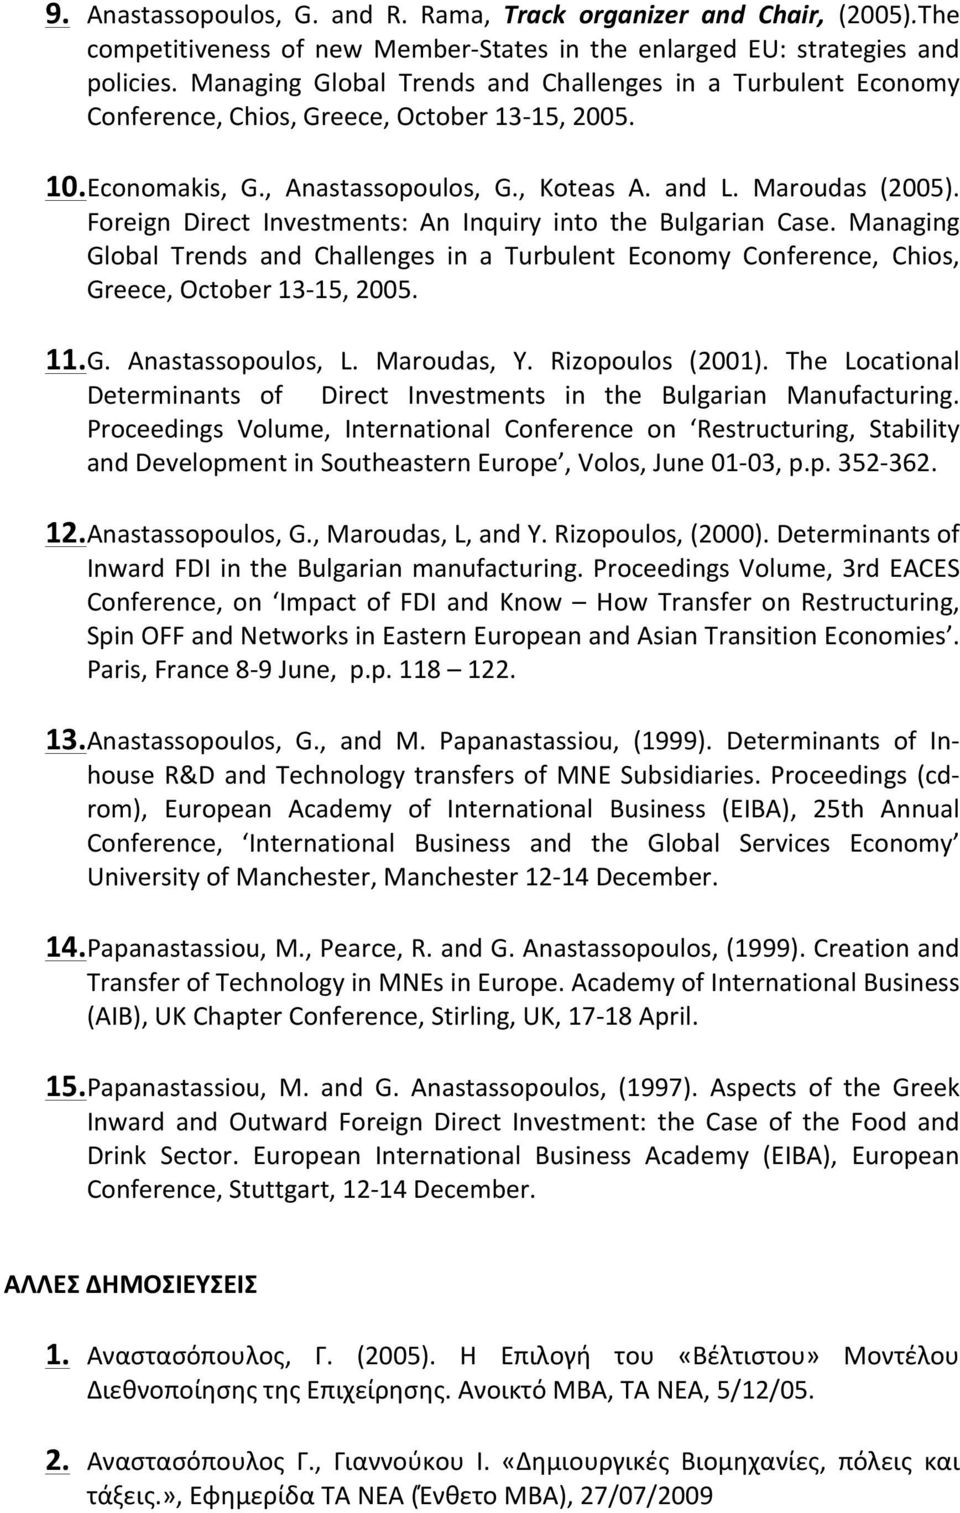 Foreign Direct Investments: An Inquiry into the Bulgarian Case. Managing Global Trends and Challenges in a Turbulent Economy Conference, Chios, Greece, October 13-15, 2005. 11. G. Anastassopoulos, L.